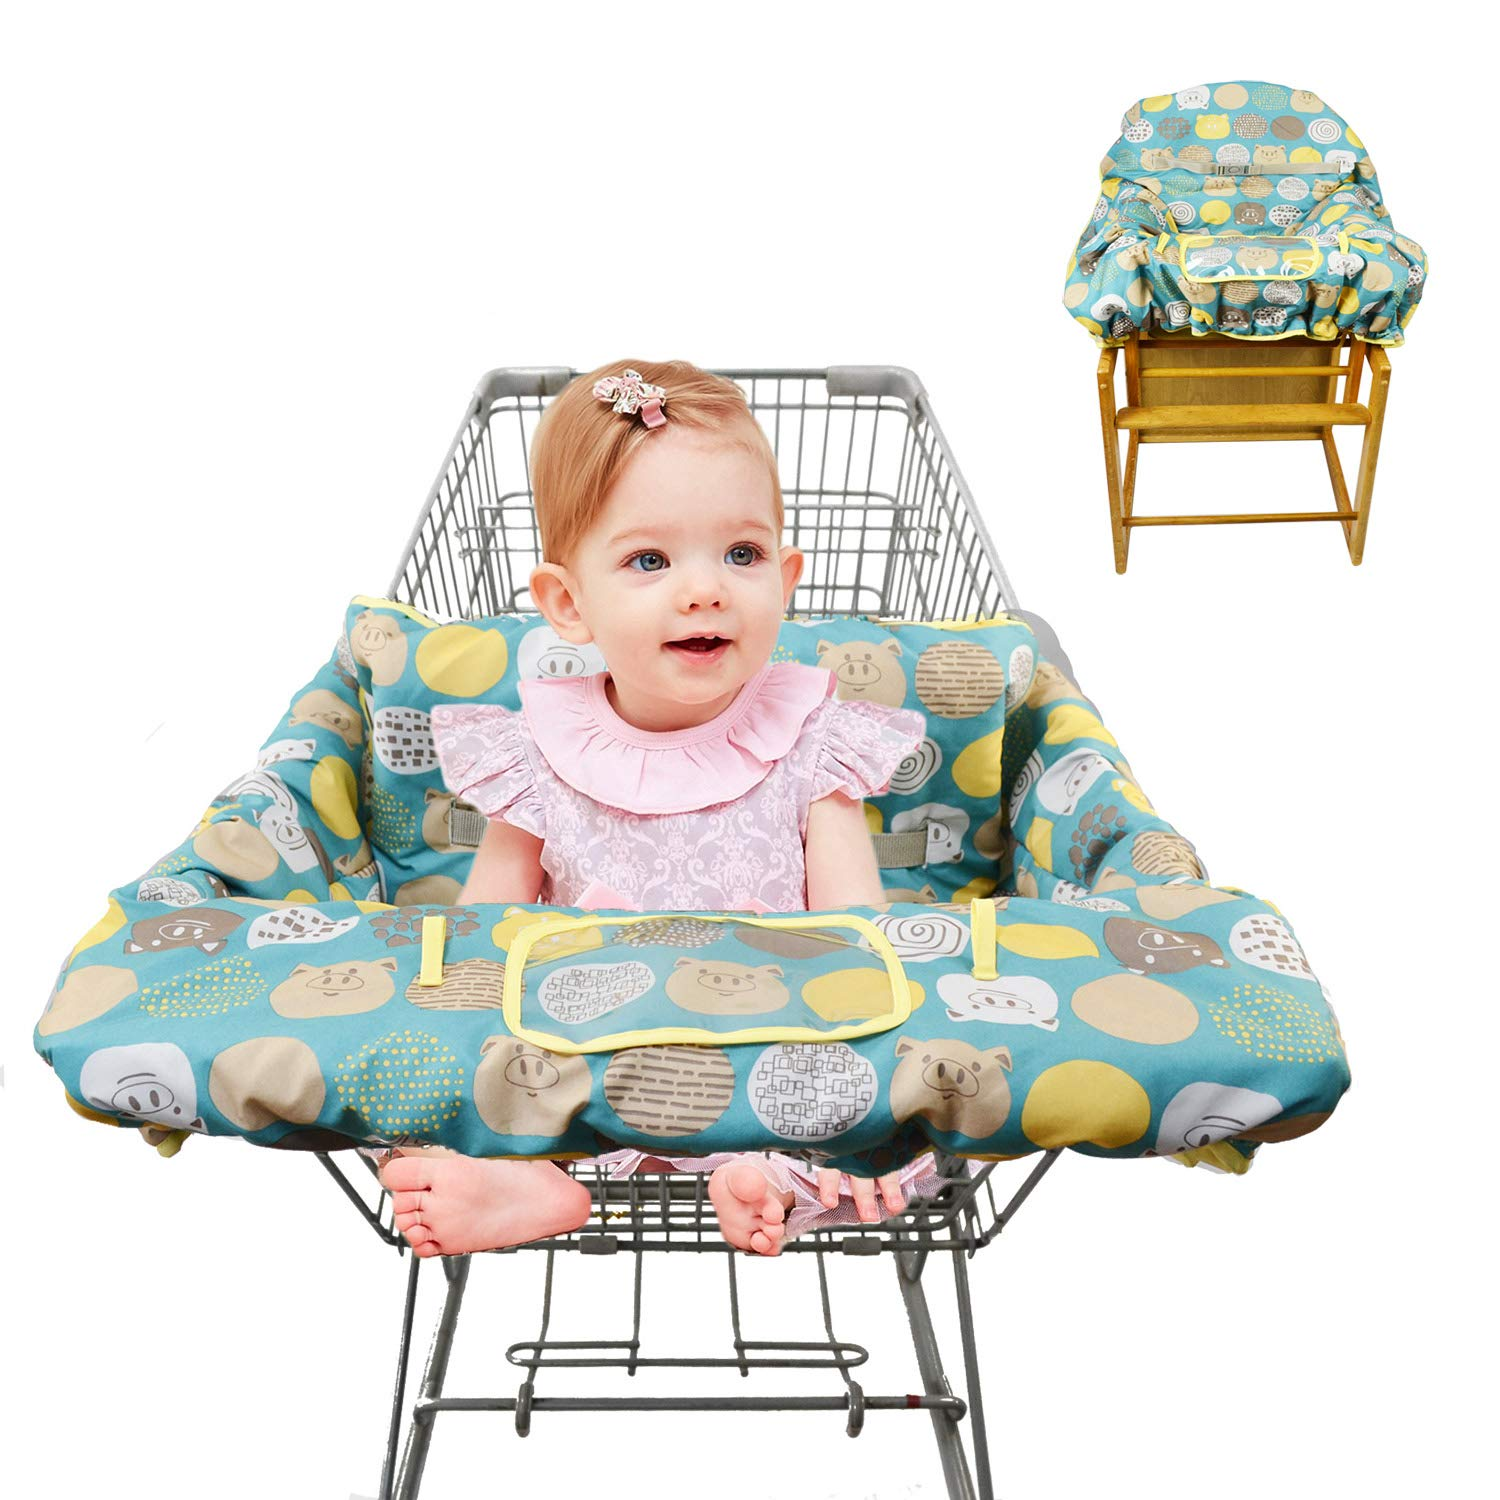 Fabulous Shopping Cart Covers For Baby Padded Toddler High Chair Cover With Cell Phone Holder Grocery Cart Liner For Boy Or Girl Large Size Yellow Cute Alphanode Cool Chair Designs And Ideas Alphanodeonline